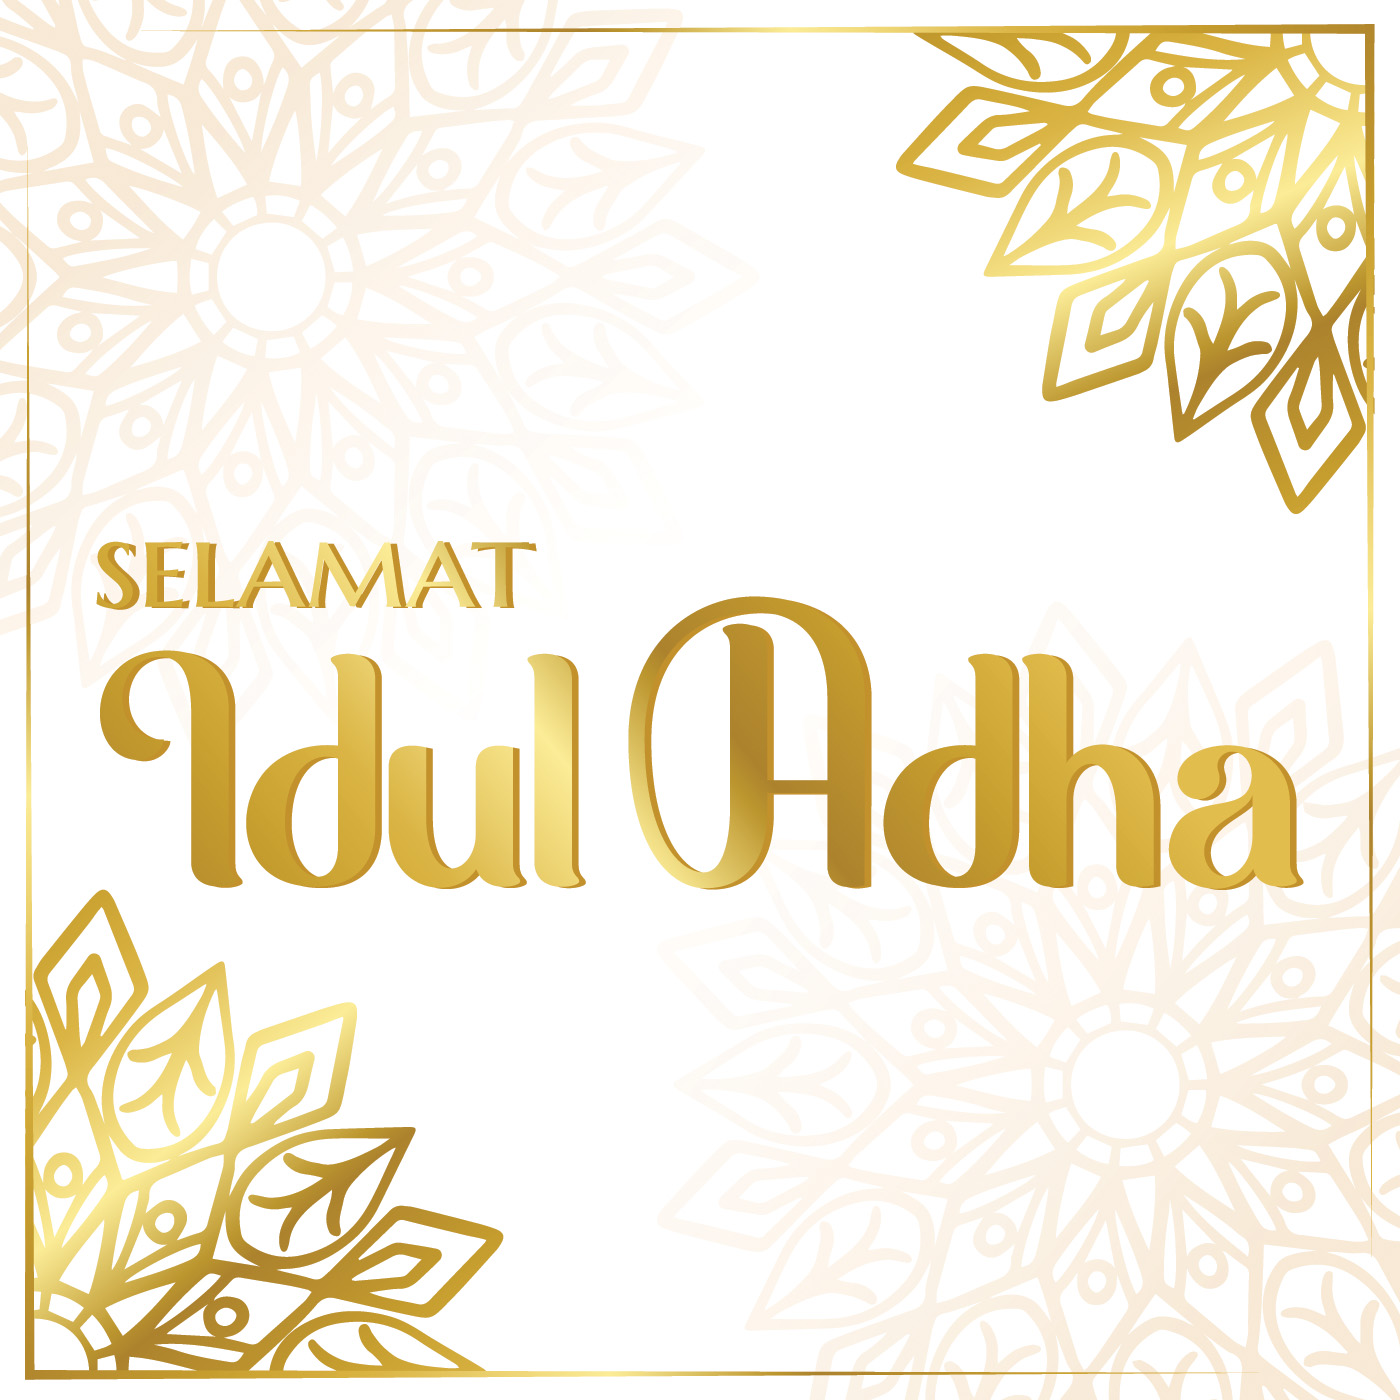 idul adha design download free vectors clipart graphics vector art https www vecteezy com vector art 662950 idul adha design